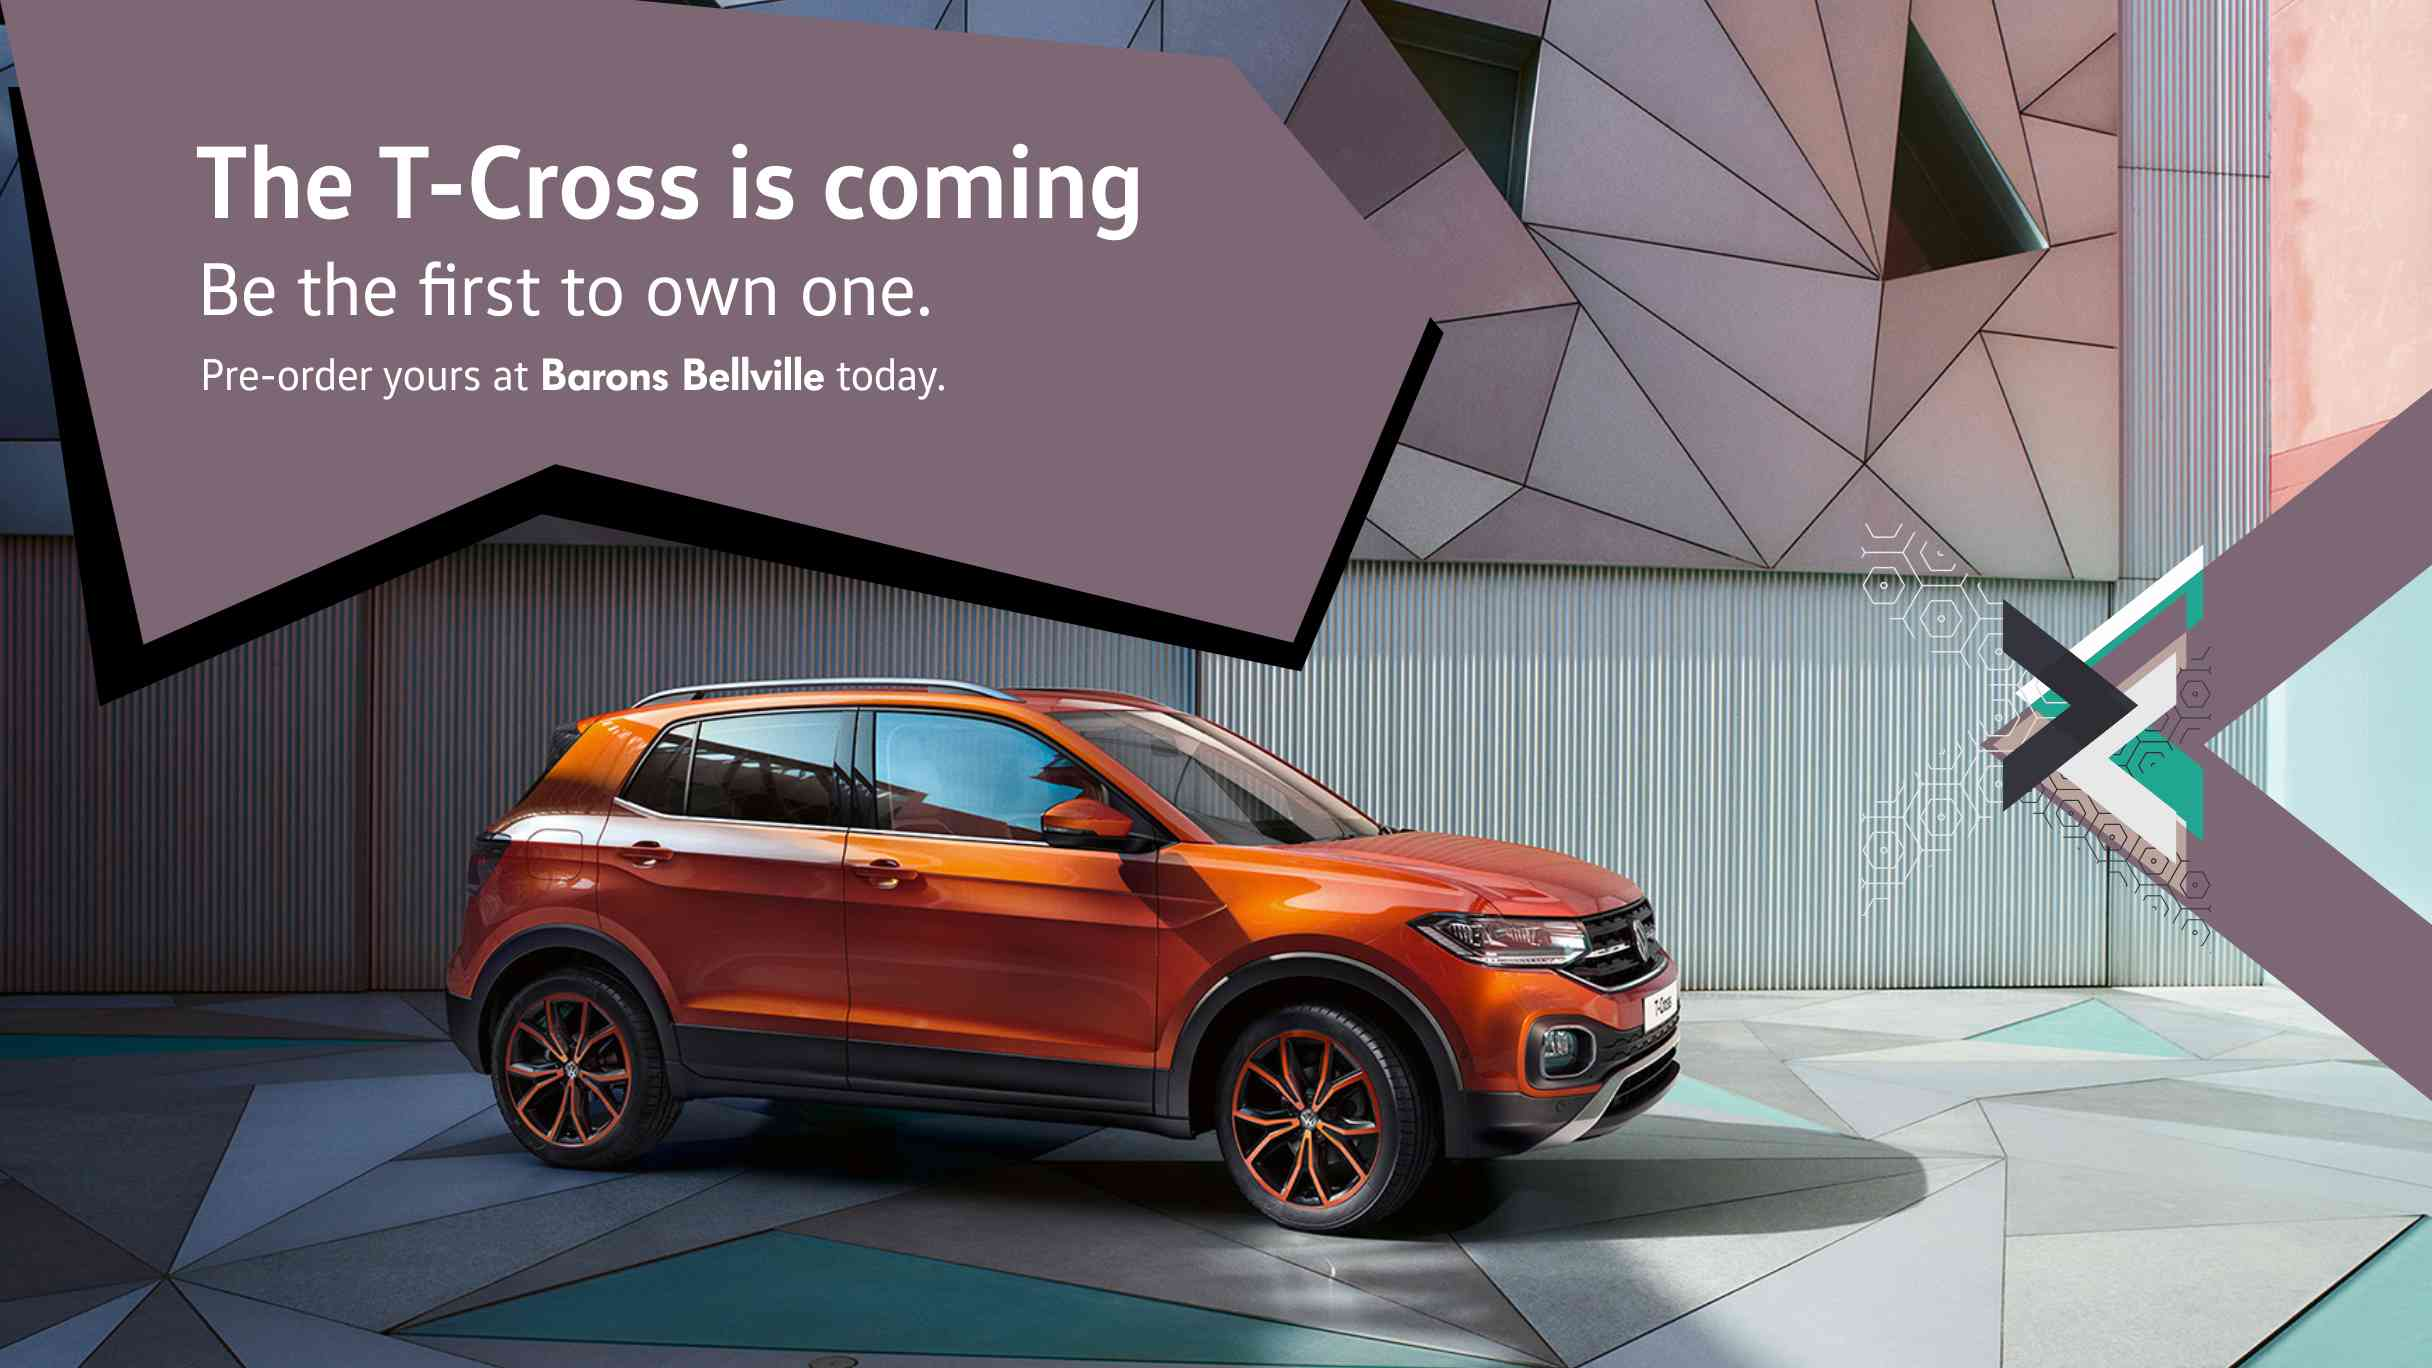 The VW T-Cross is coming